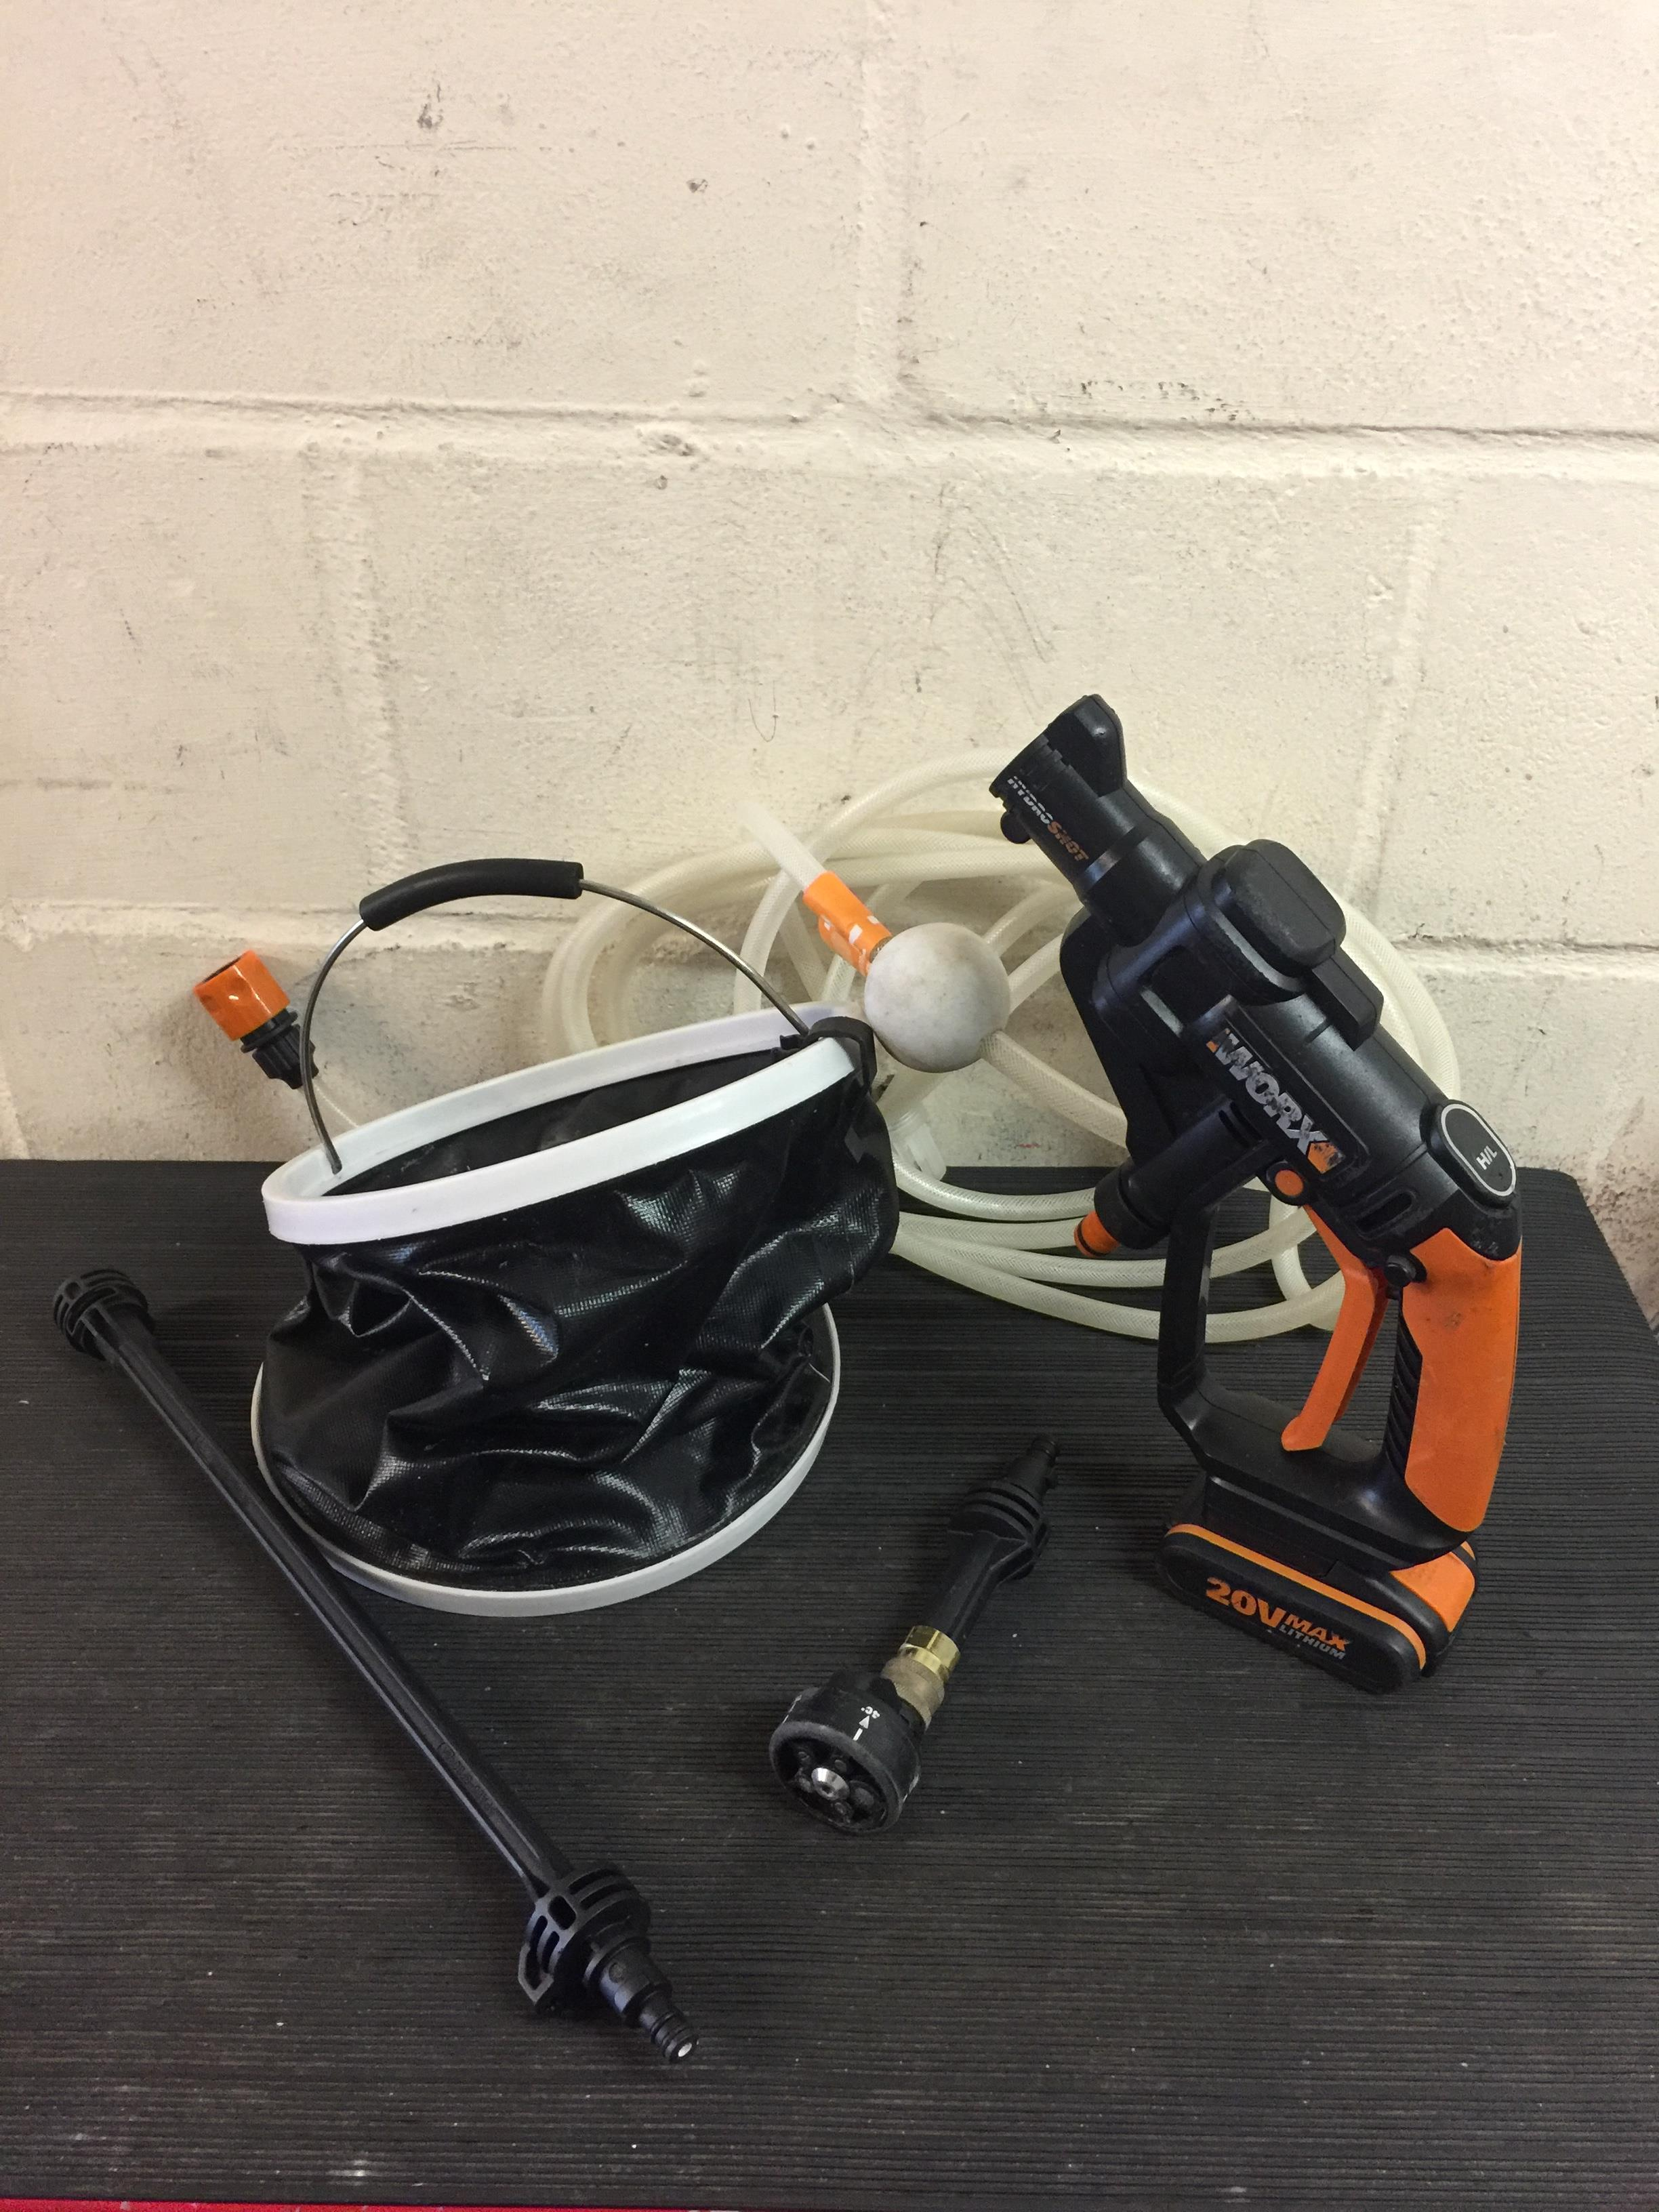 Lot 114 - WORX WG629E.1 Cordless HYDROSHOT Portable Pressure Cleaner (without charger) RRP £117.99